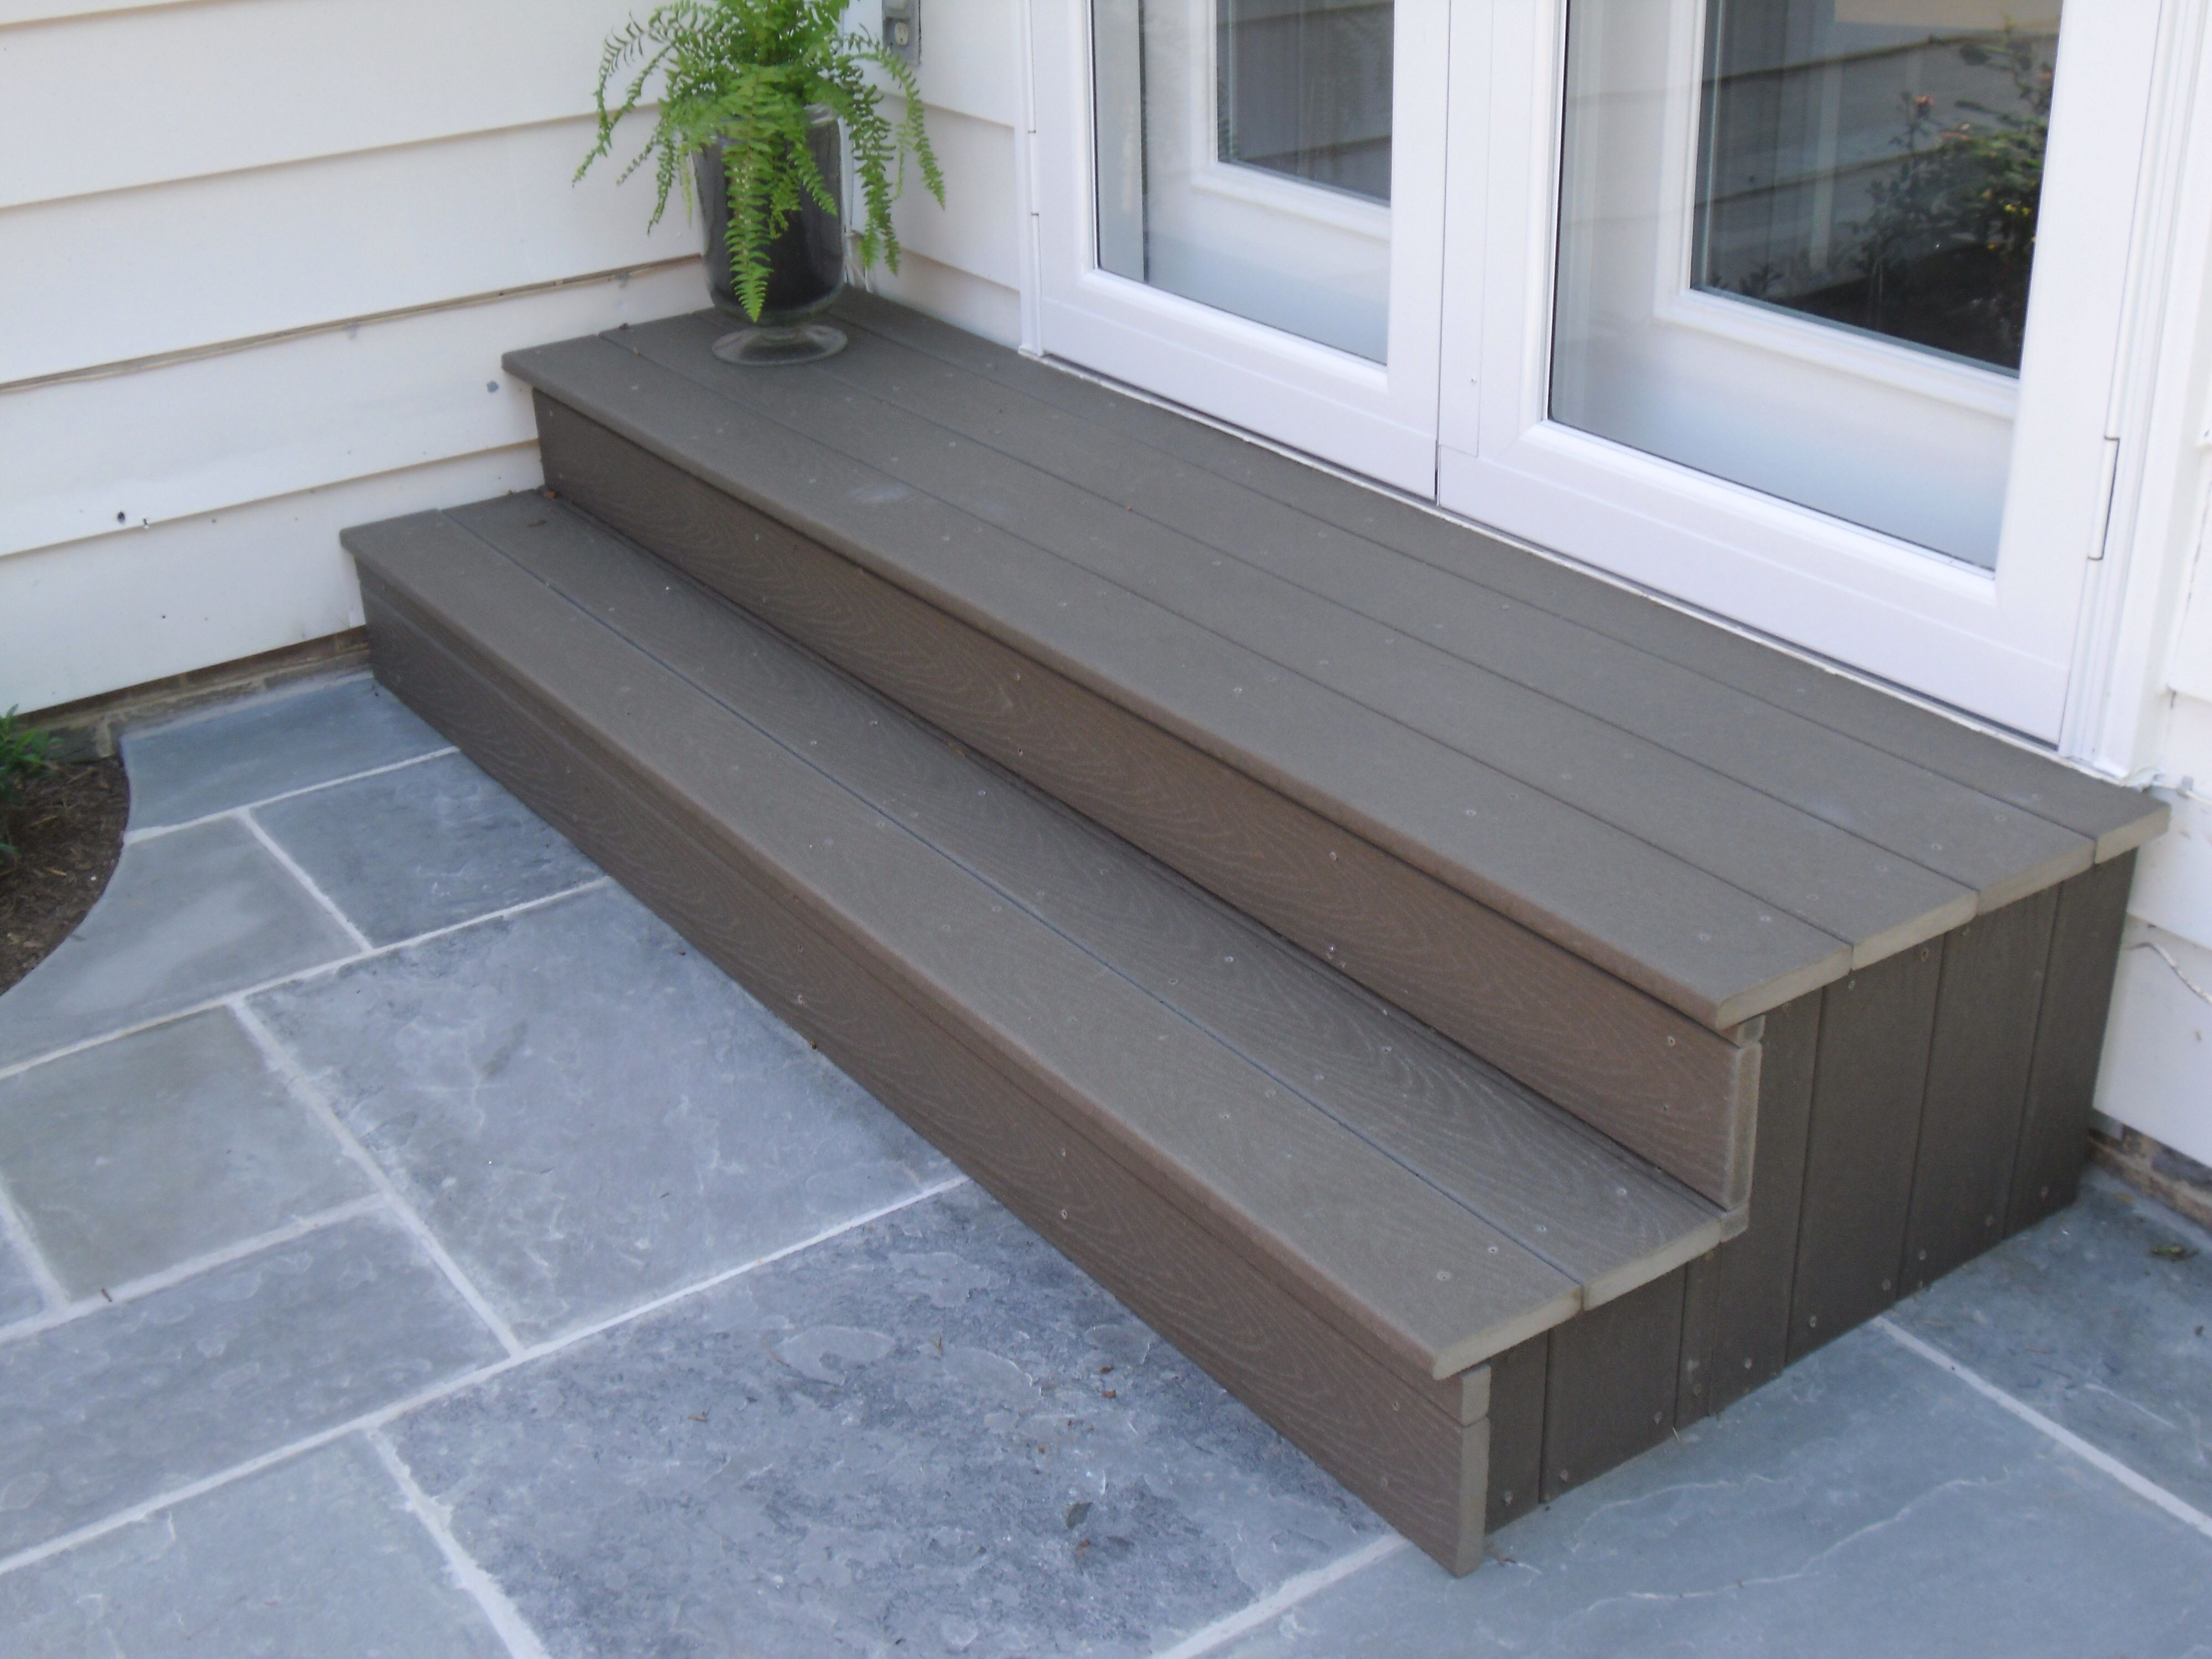 Pin By Green Spaces Landscaping Llc On Decks Patio Steps Diy | Pre Built Wooden Steps | 12 Step | Interior | Box | Oak | Premade